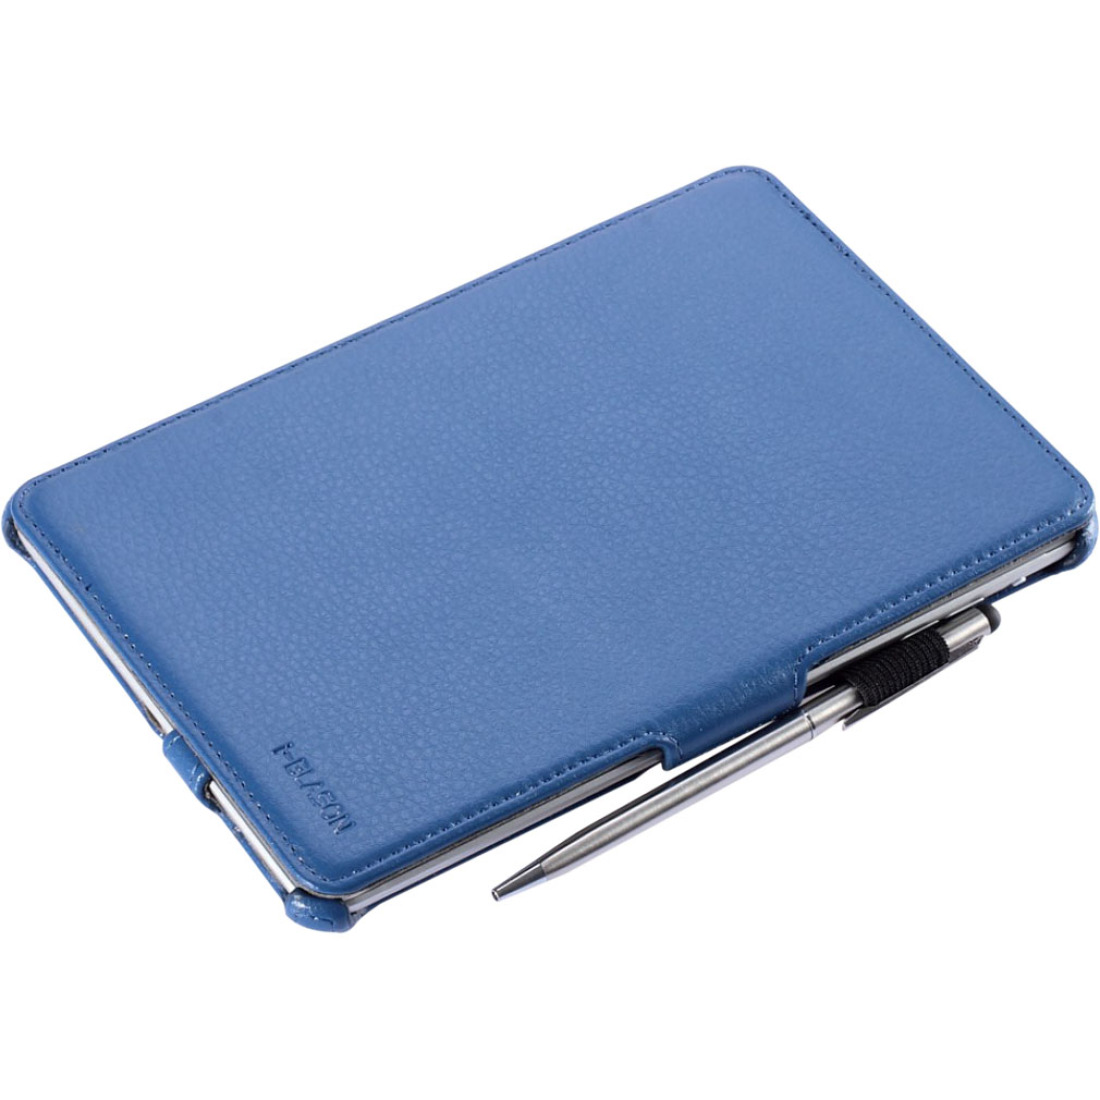 I-Blason Book Shell Stand Case - Flip cover for tablet - faux leather - black - for Apple iPad mini 2